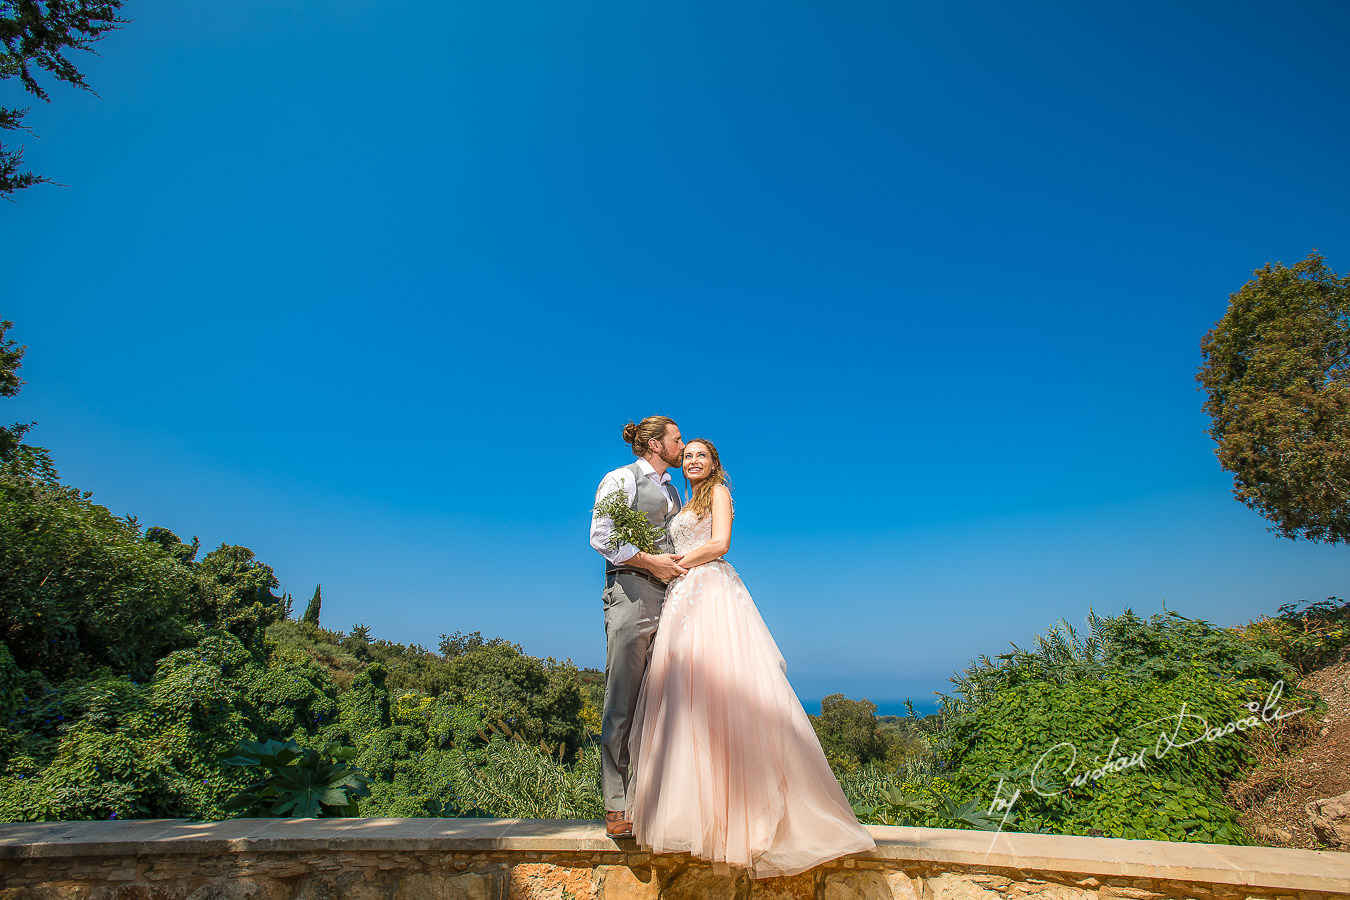 Bride and groom posing on a green garden, moments captured at a Shamanic Wedding Ceremony by Cyprus Wedding Photographer Cristian Dascalu.